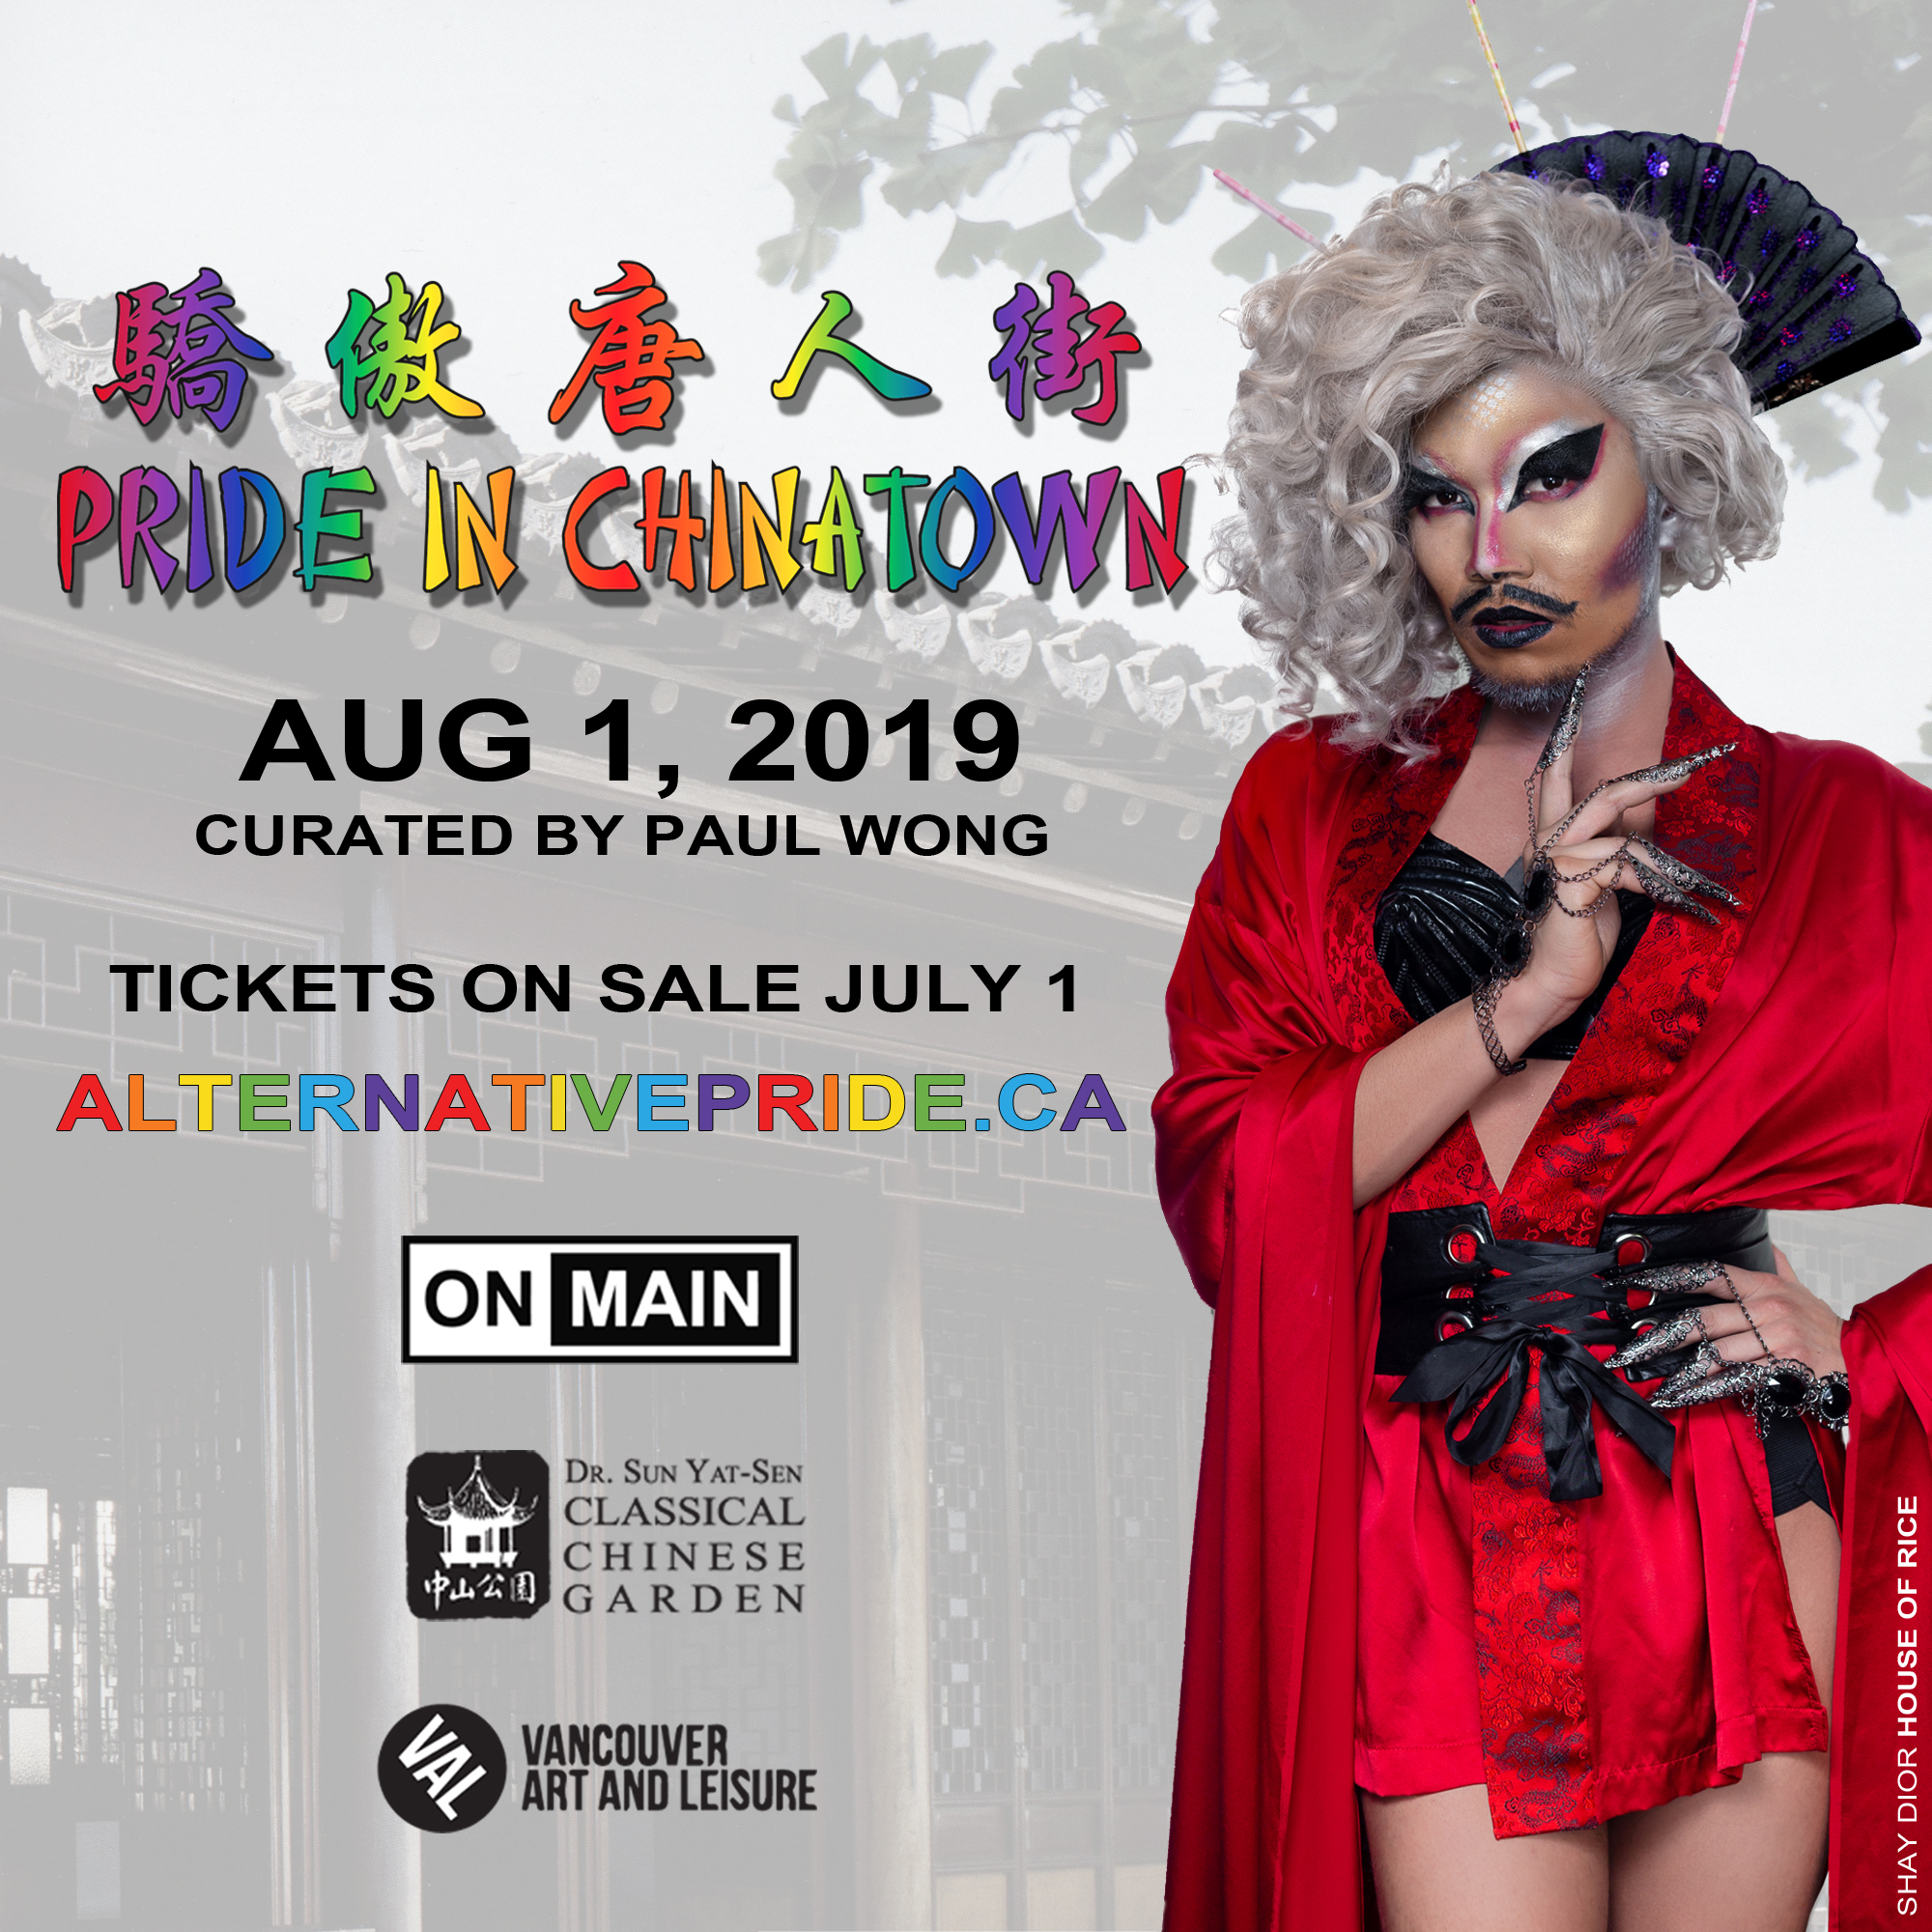 Pride in Chinatown   August 1, 2019